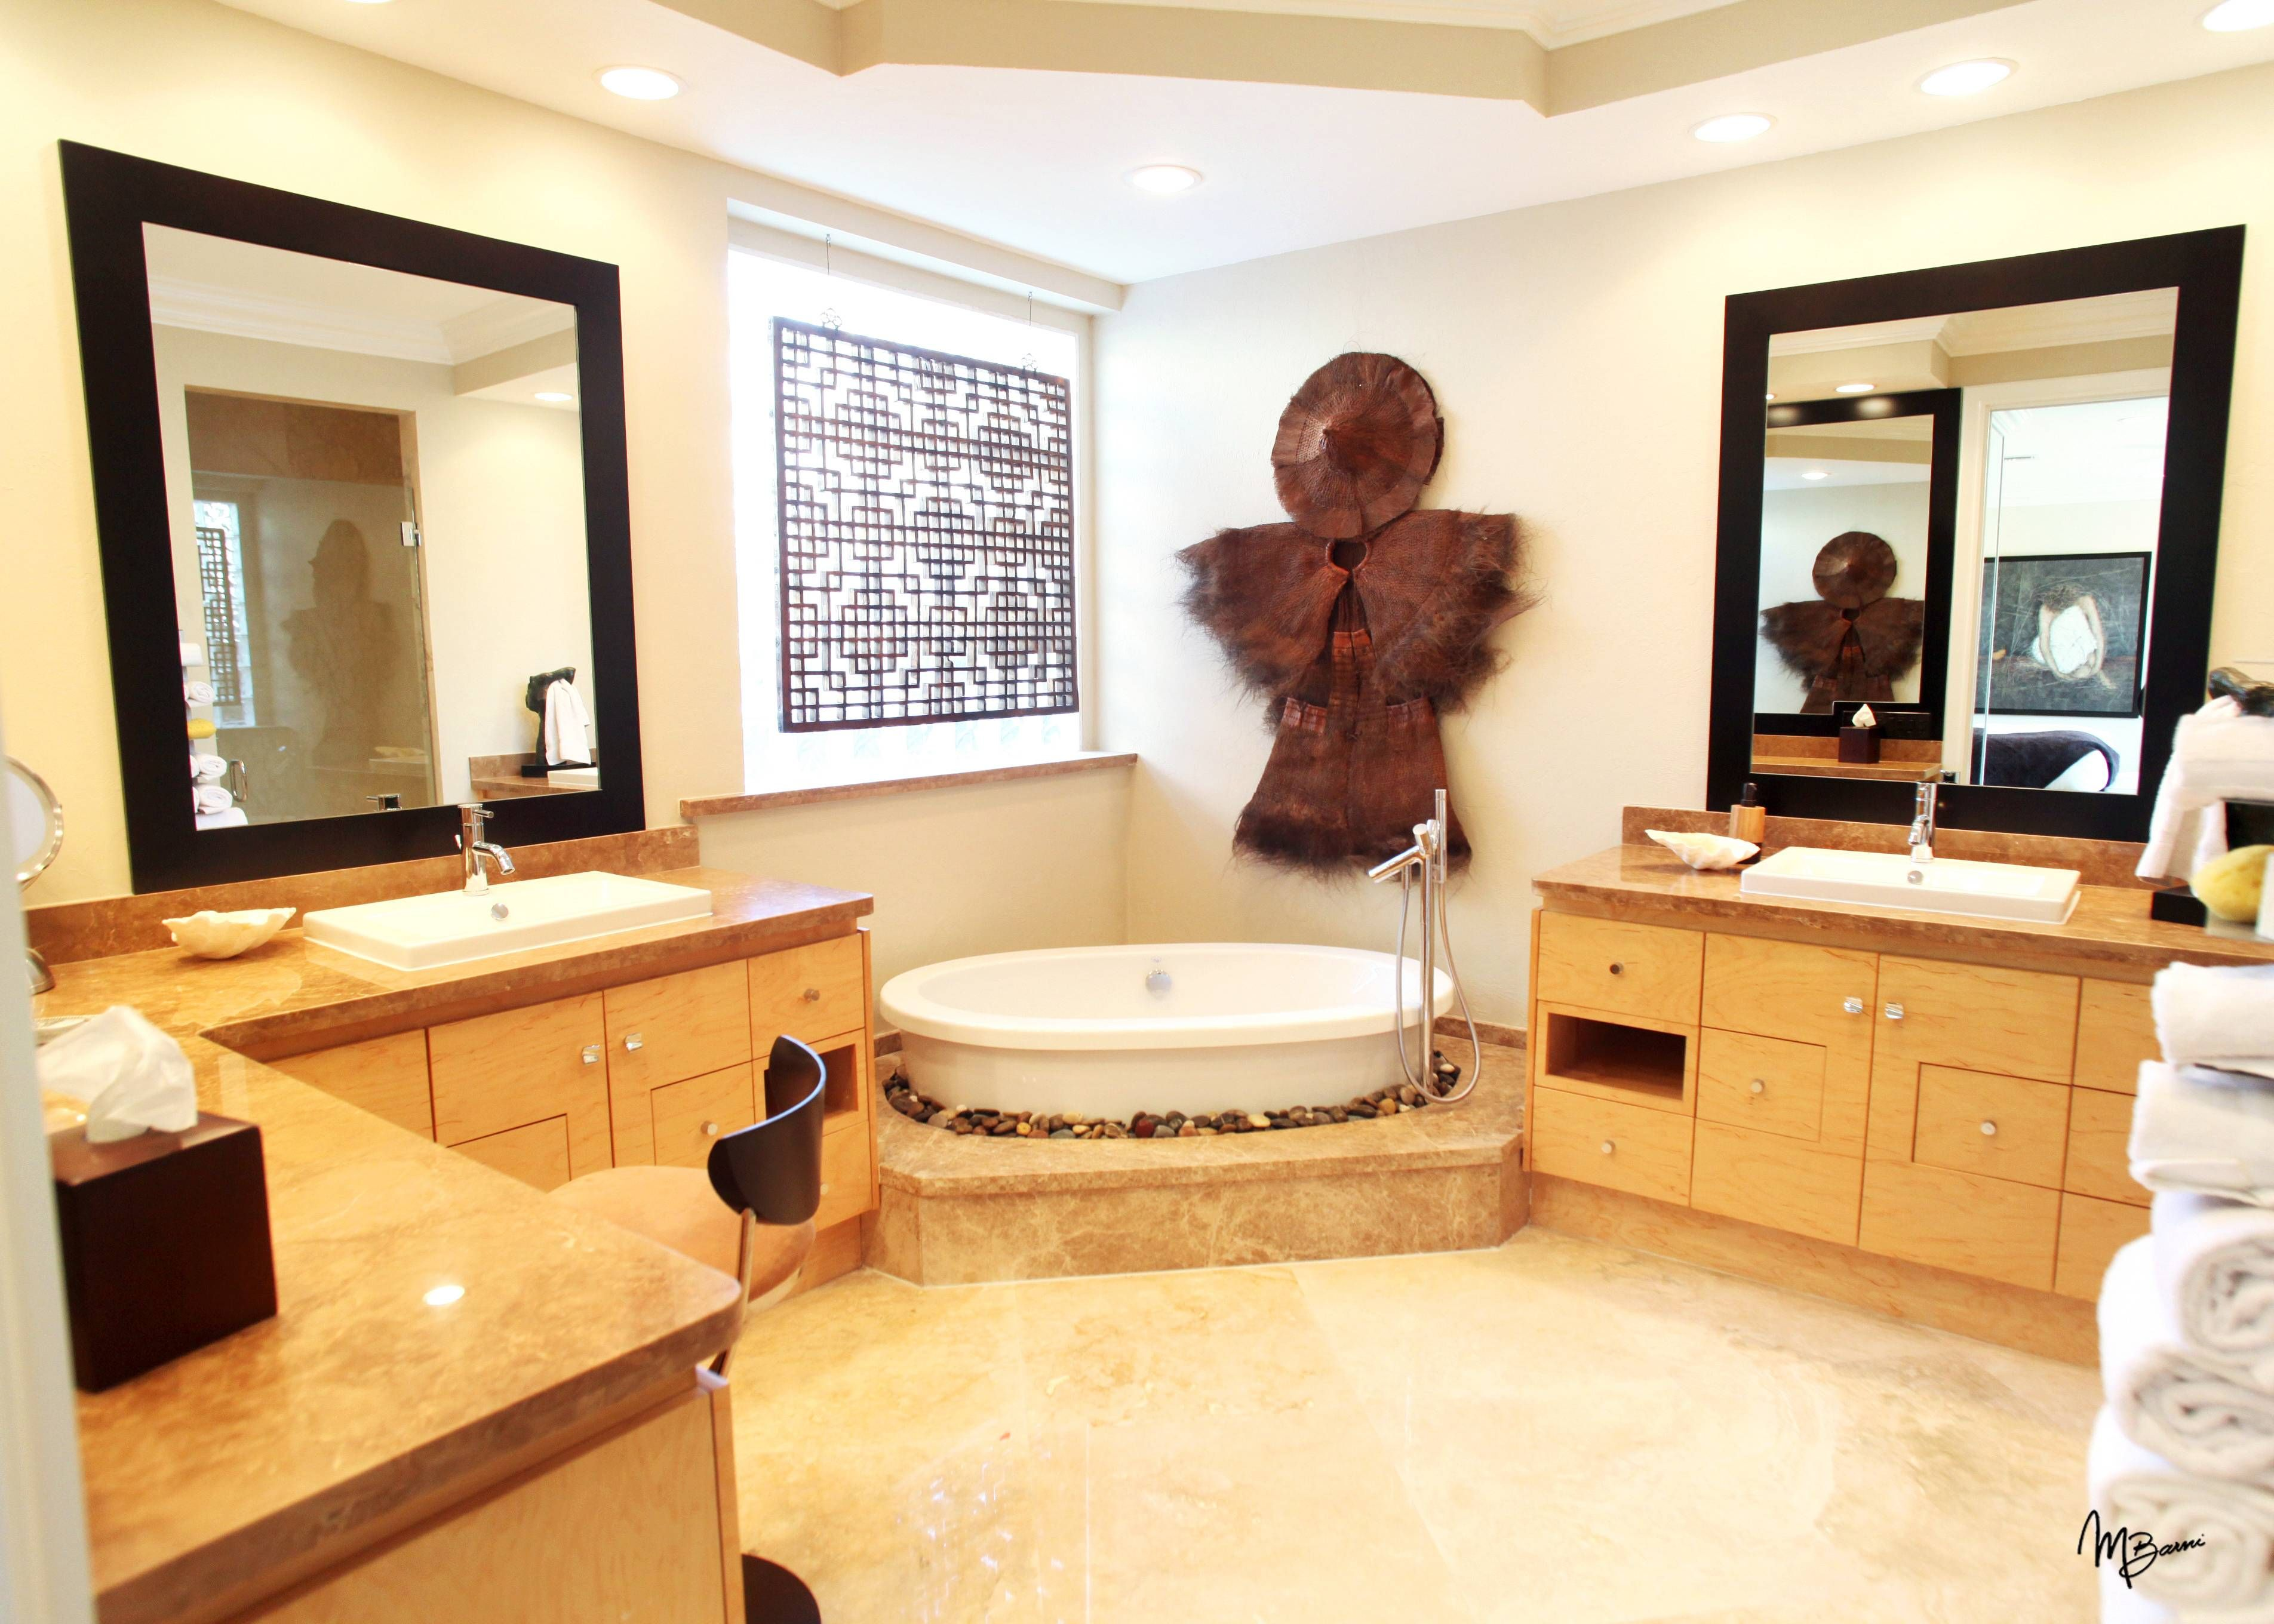 designer ron caster went further and supplement the custom bathroom cabinets with the innovative selection of accessories in a boca raton residence